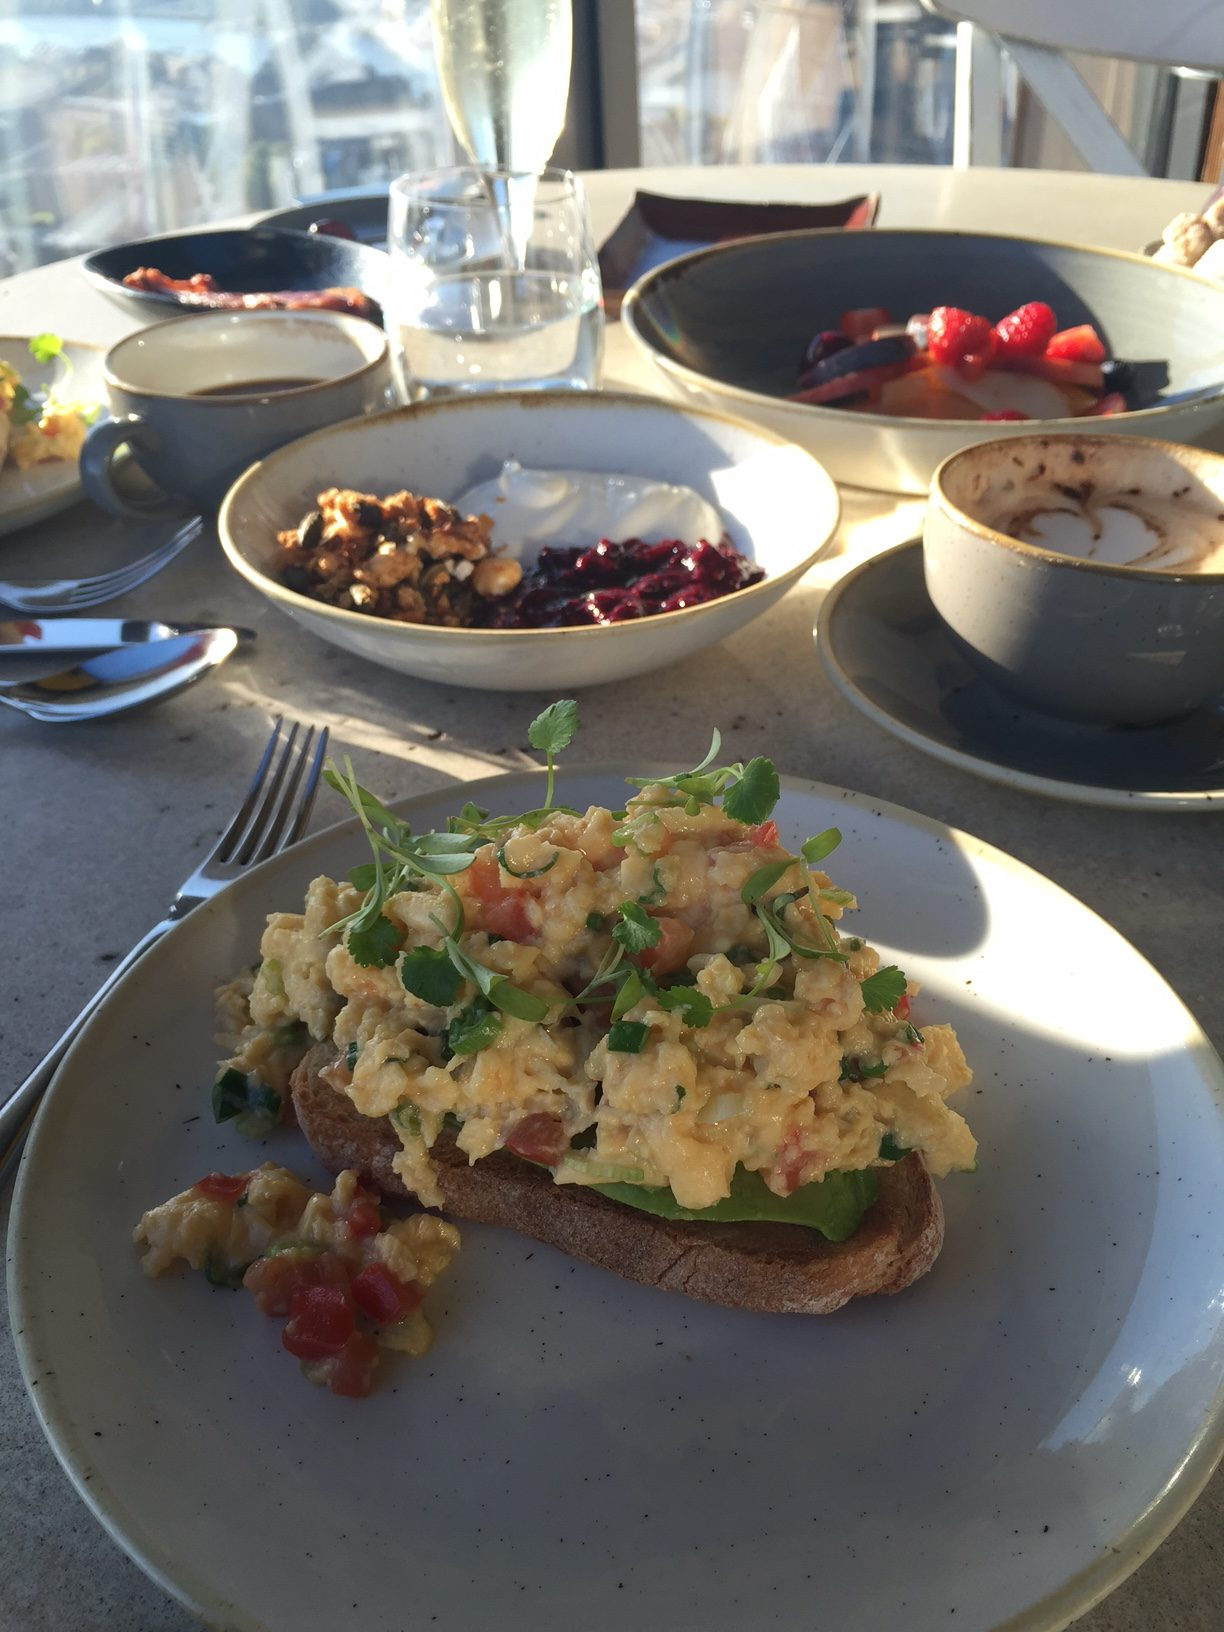 Breakast at duck and waffle